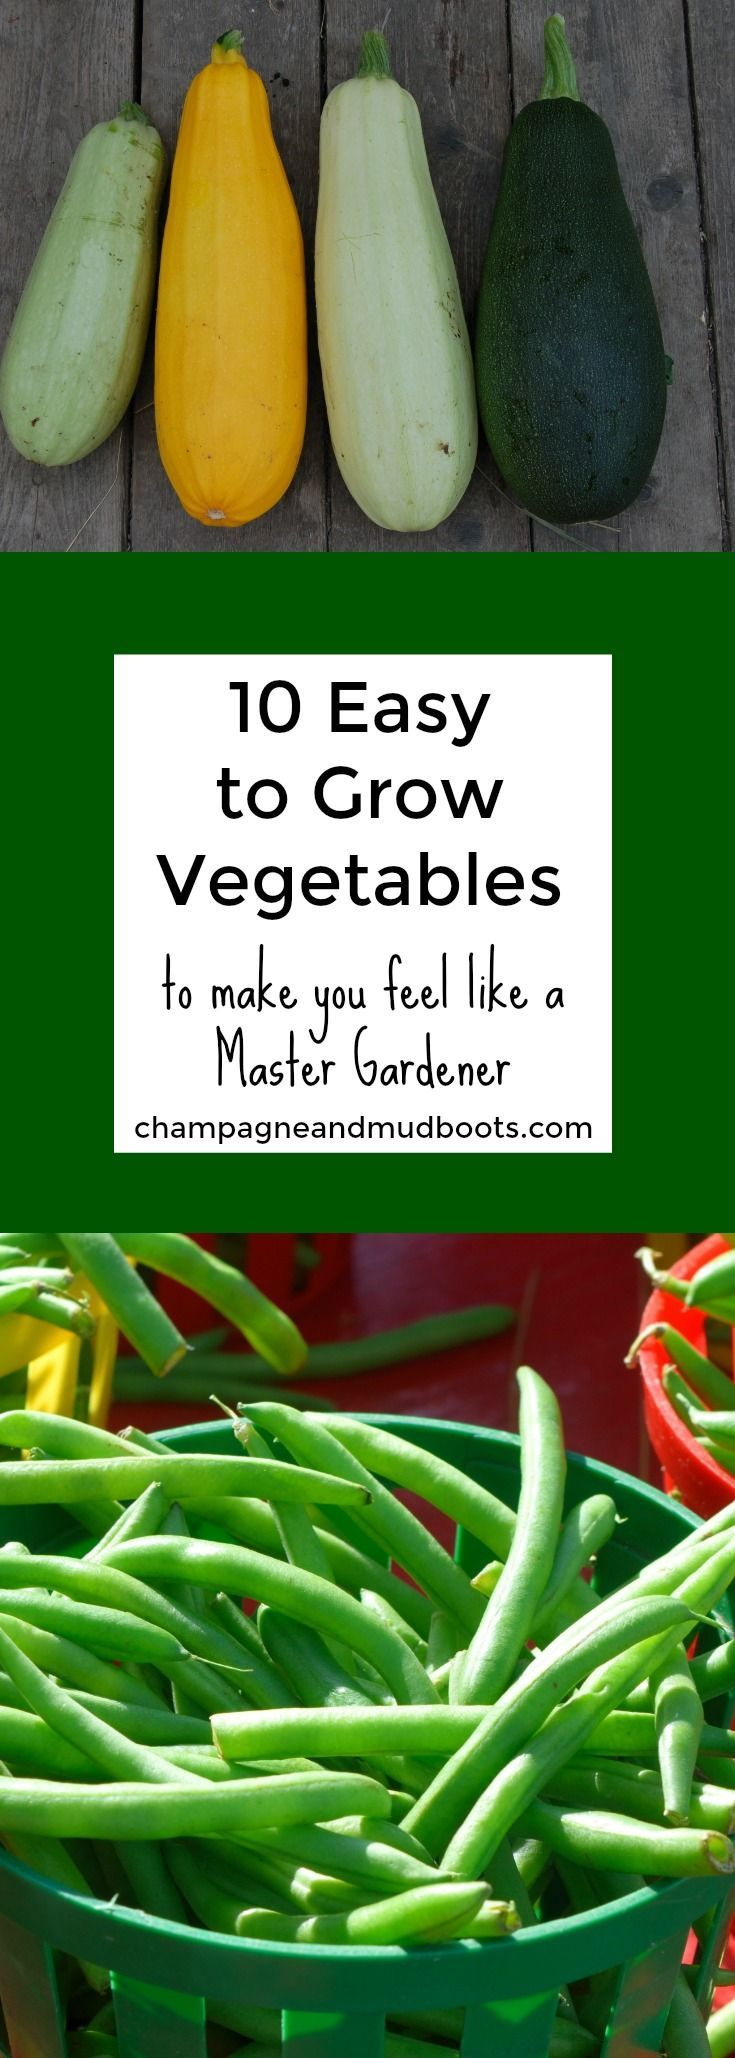 10 Easy to Grow Vegetables for Your Garden Easy